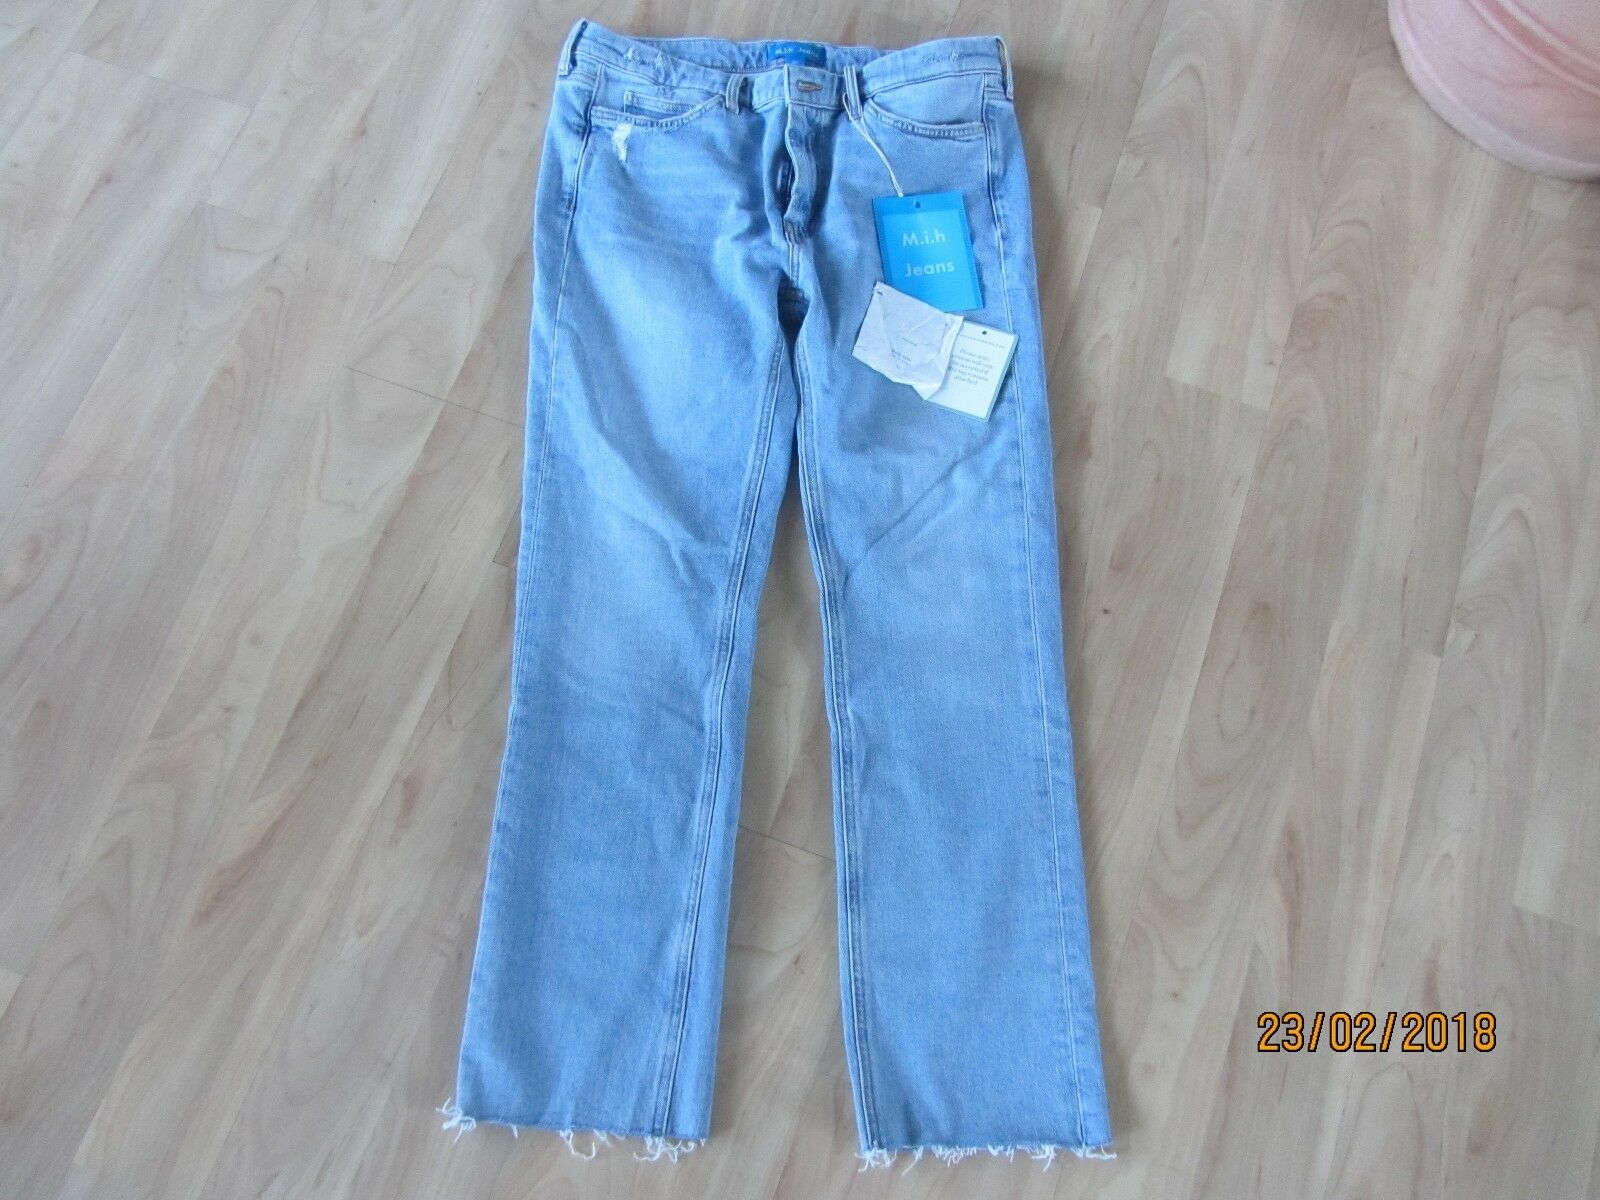 M.i.h Jeans NP ca Matchesfashion  2018 Daily Jeans